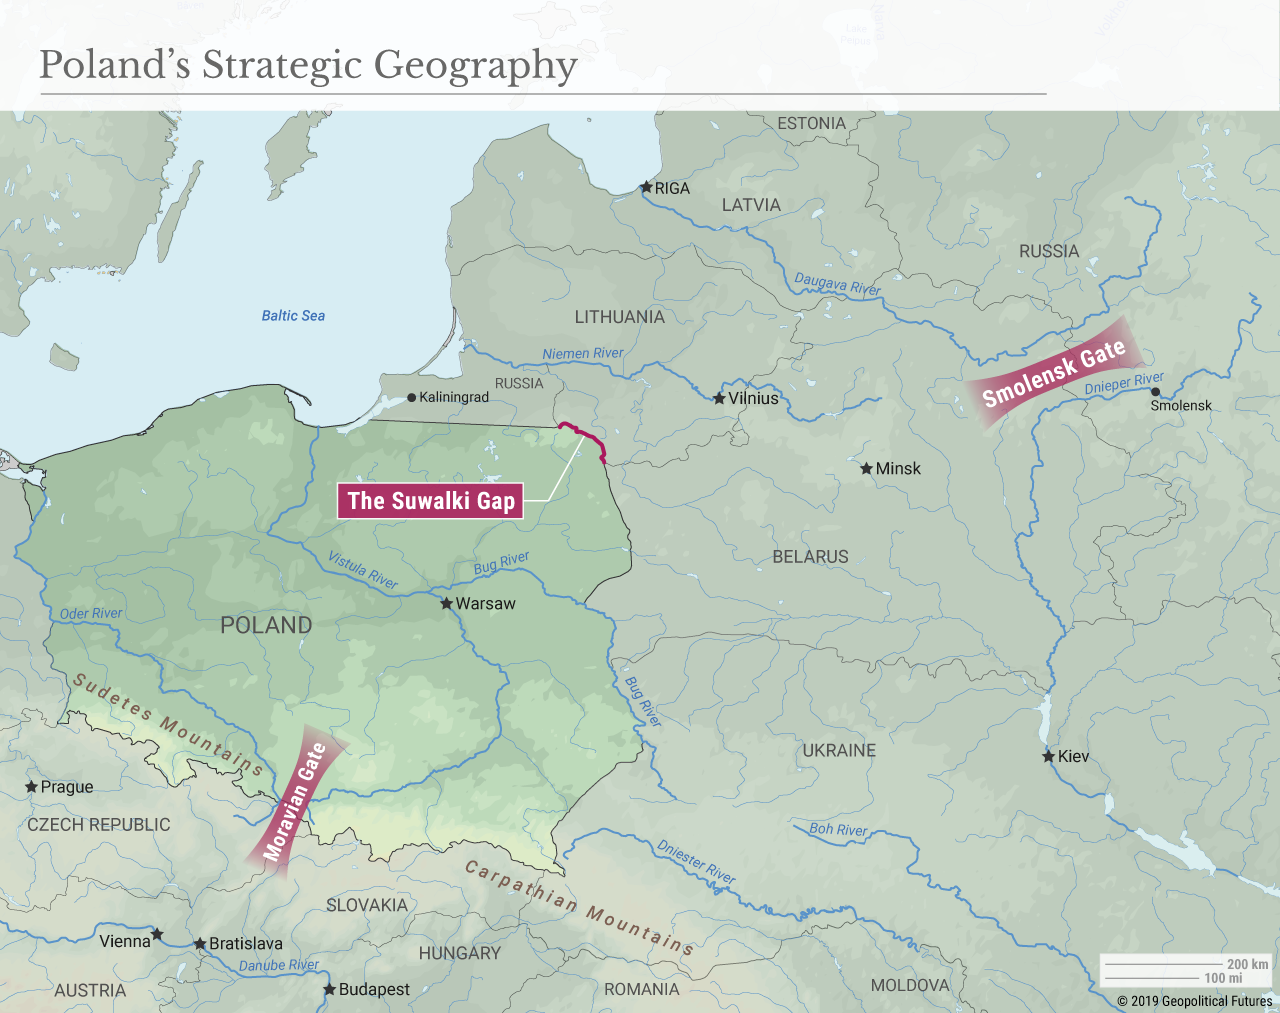 Poland's Strategic Geography